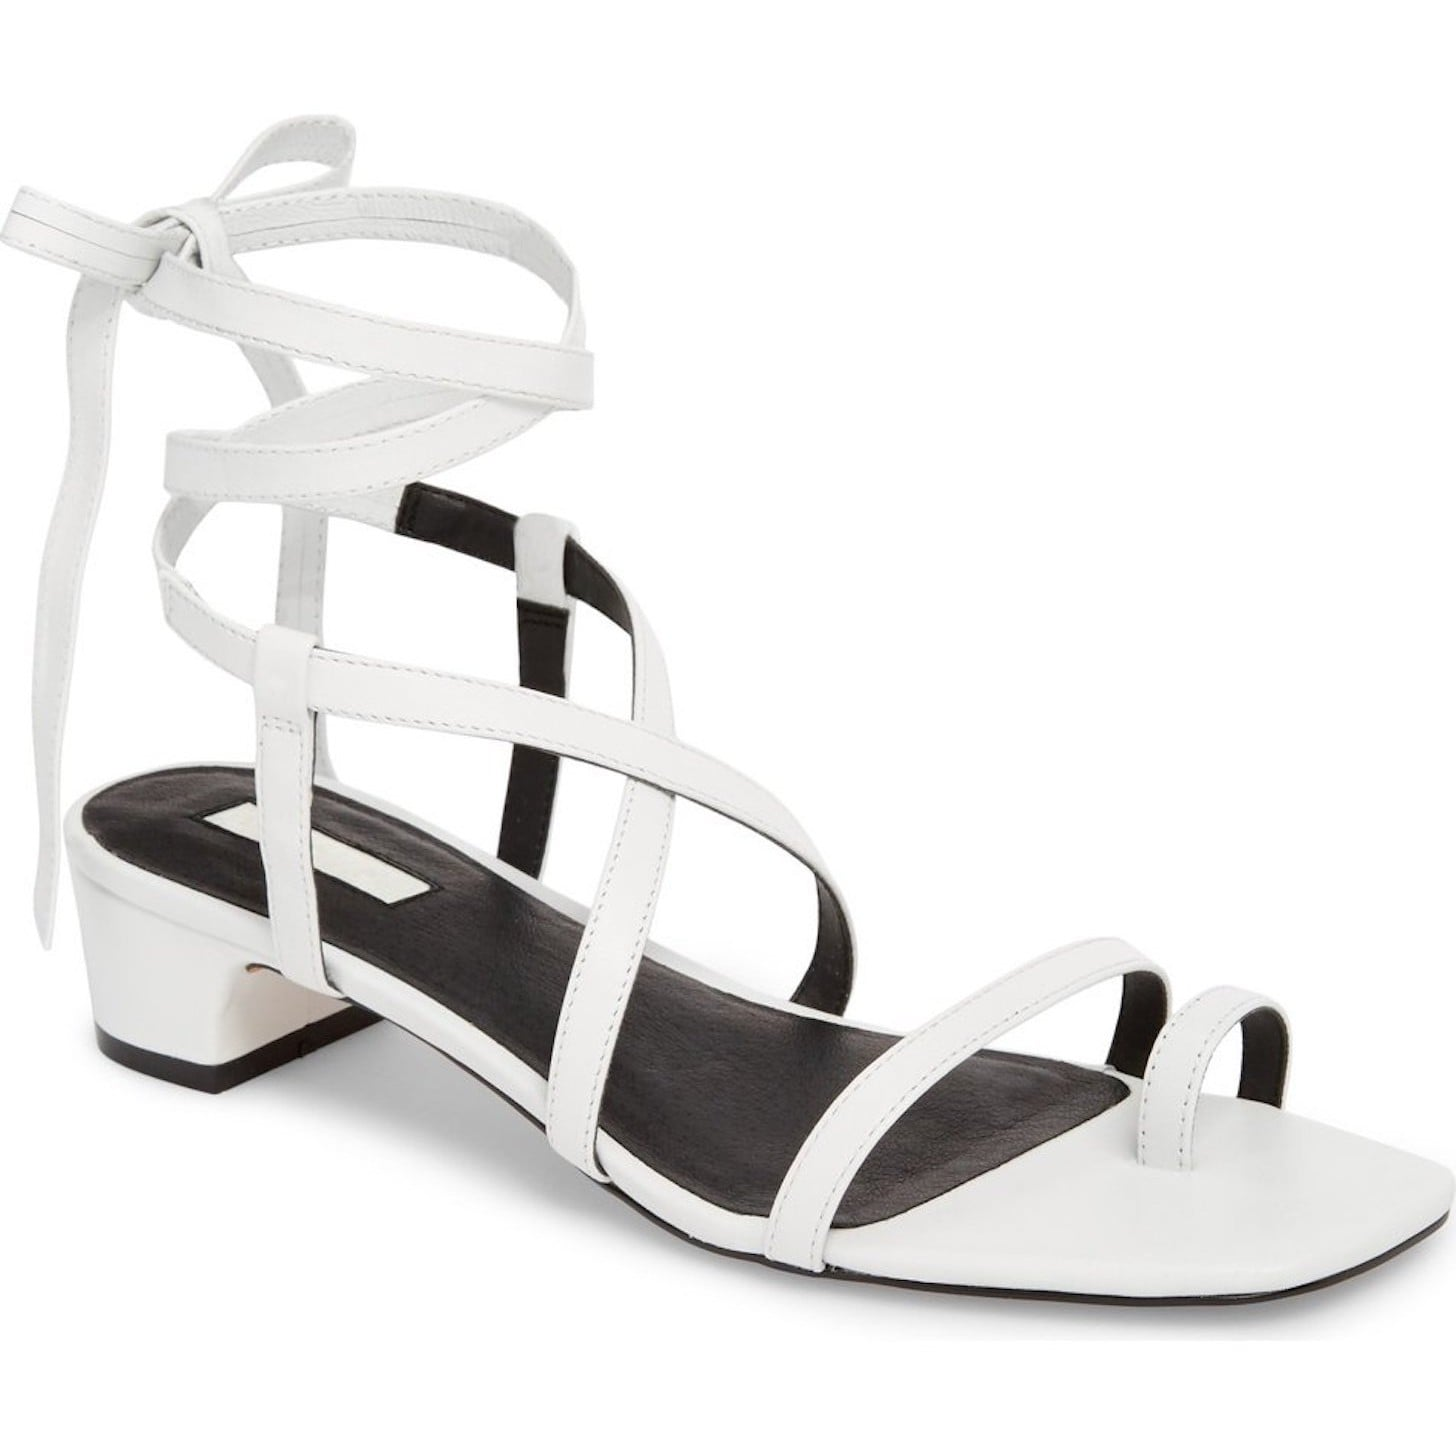 Best Sandals White Fashion 2018Popsugar Sandals Fashion Best 2018Popsugar White UVLpGzMqS